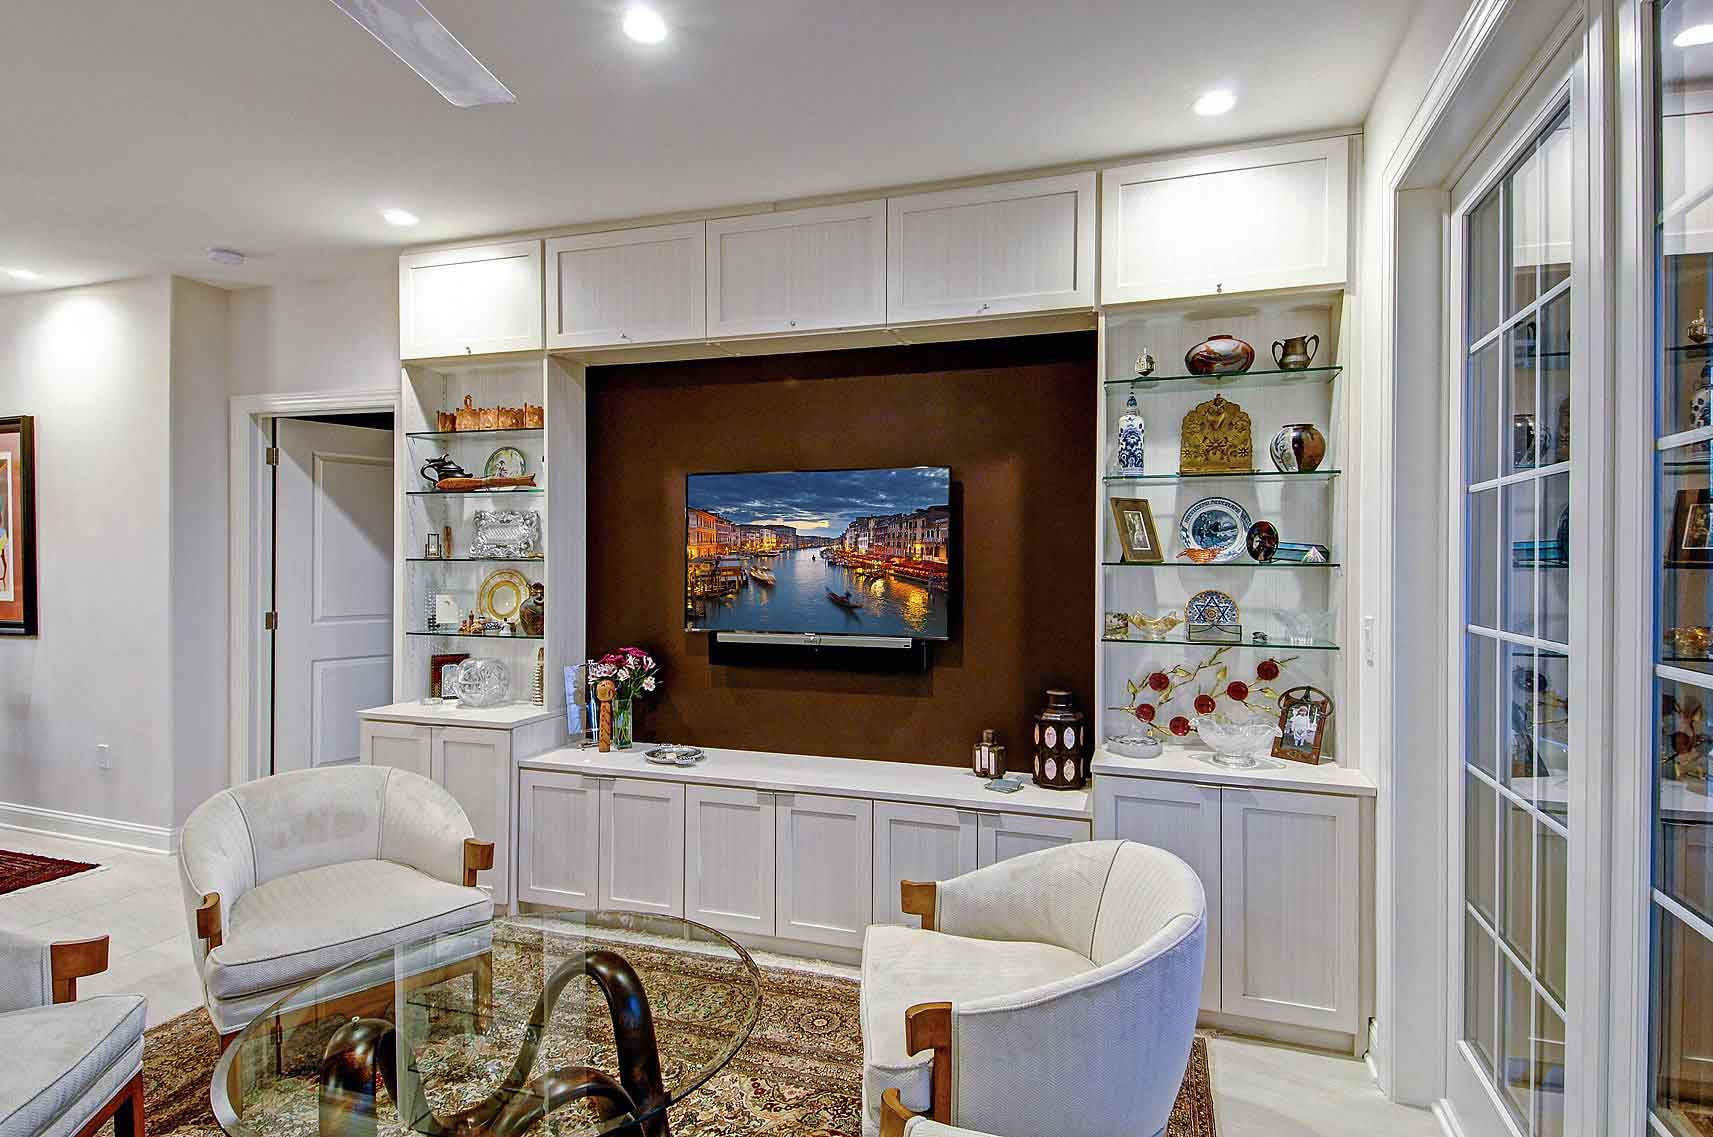 Media center wall unit with entertainment area